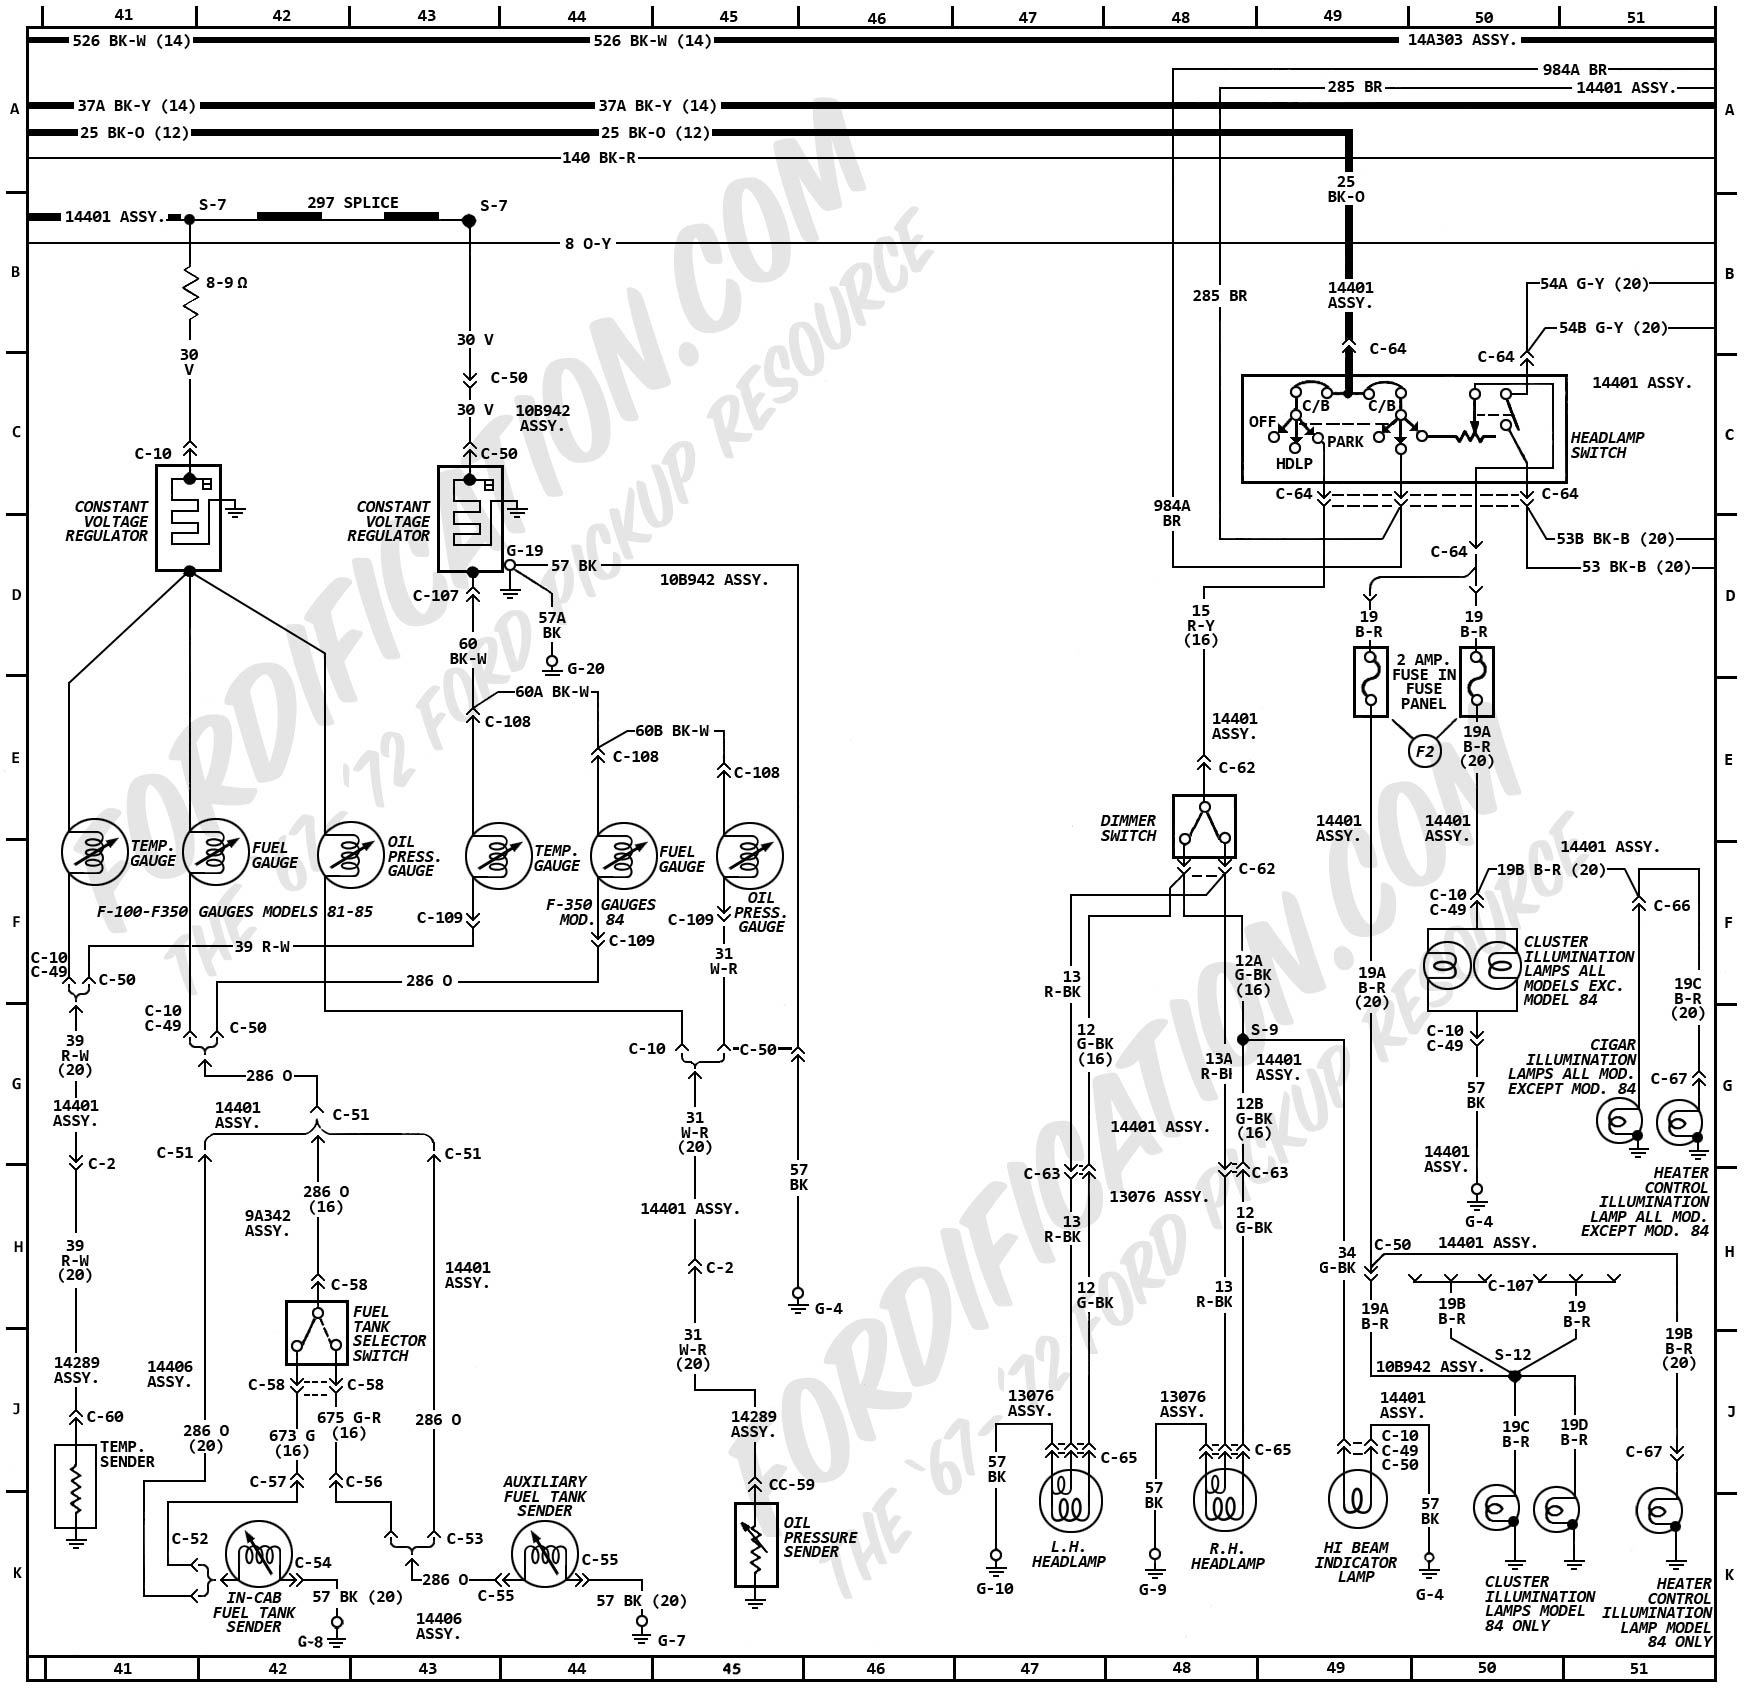 Ford Truck Wiring Diagrams : Ford truck wiring diagrams fordification